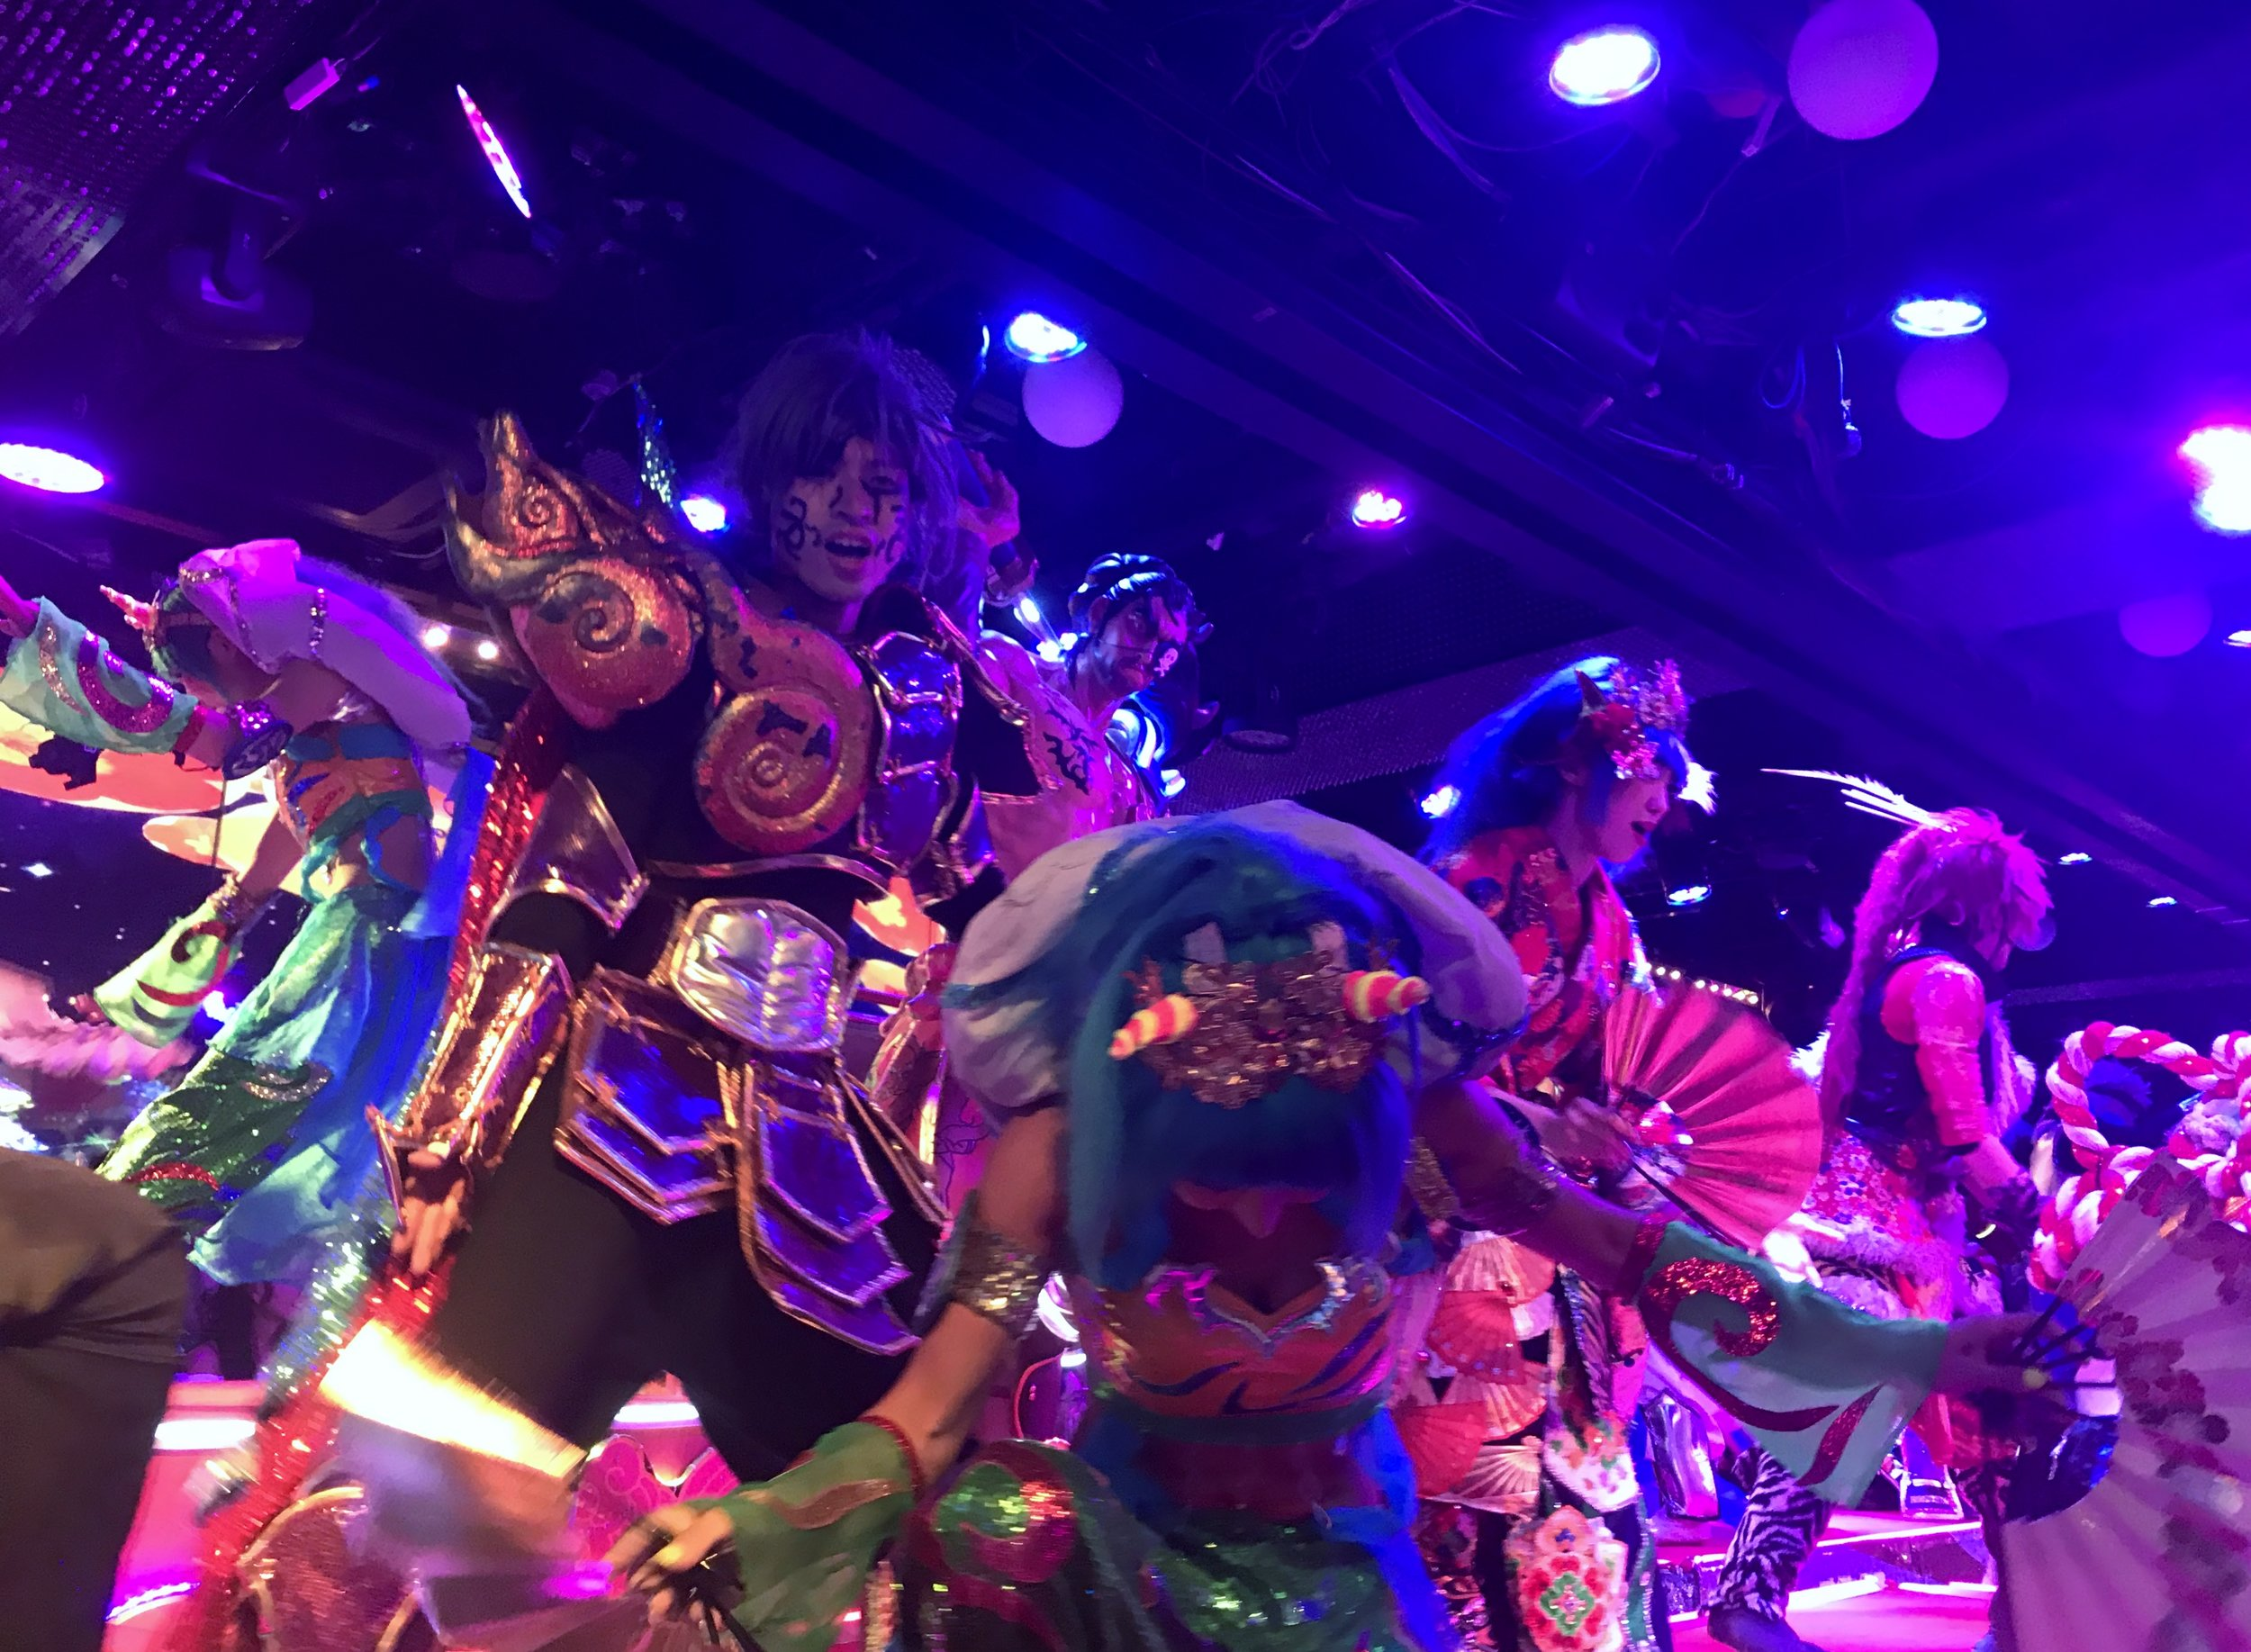 The grand Finale at Robot Restaurant